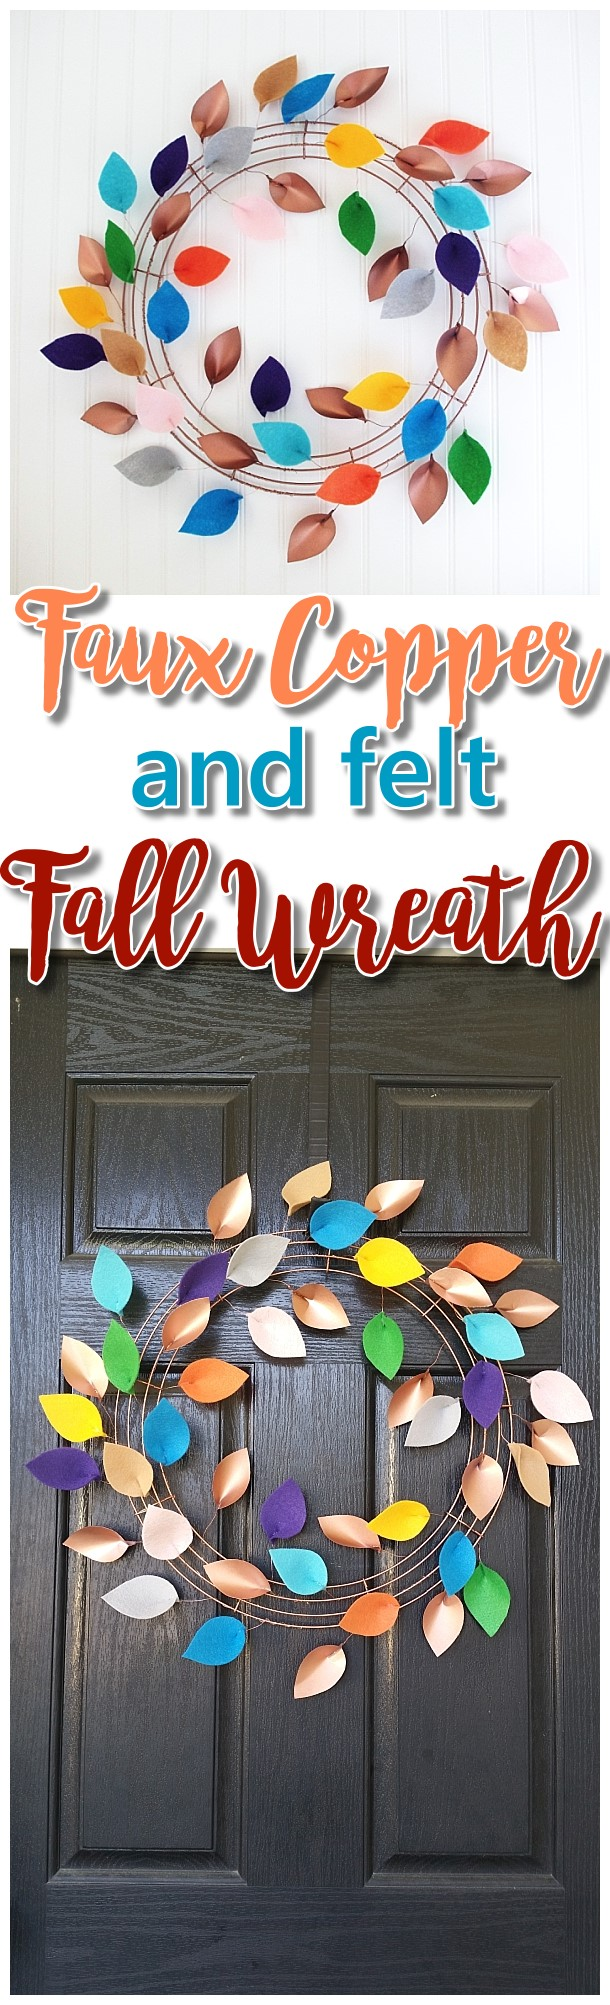 DIY Faux Copper Paper and Felt Leaves Fall Wreath Decoration Paper Craft Tutorial - Pretty Indoor or Outdoor Do it Yourself Paper Crafts Project Autumn Wreath Easy Decoration by Dreaming in DIY